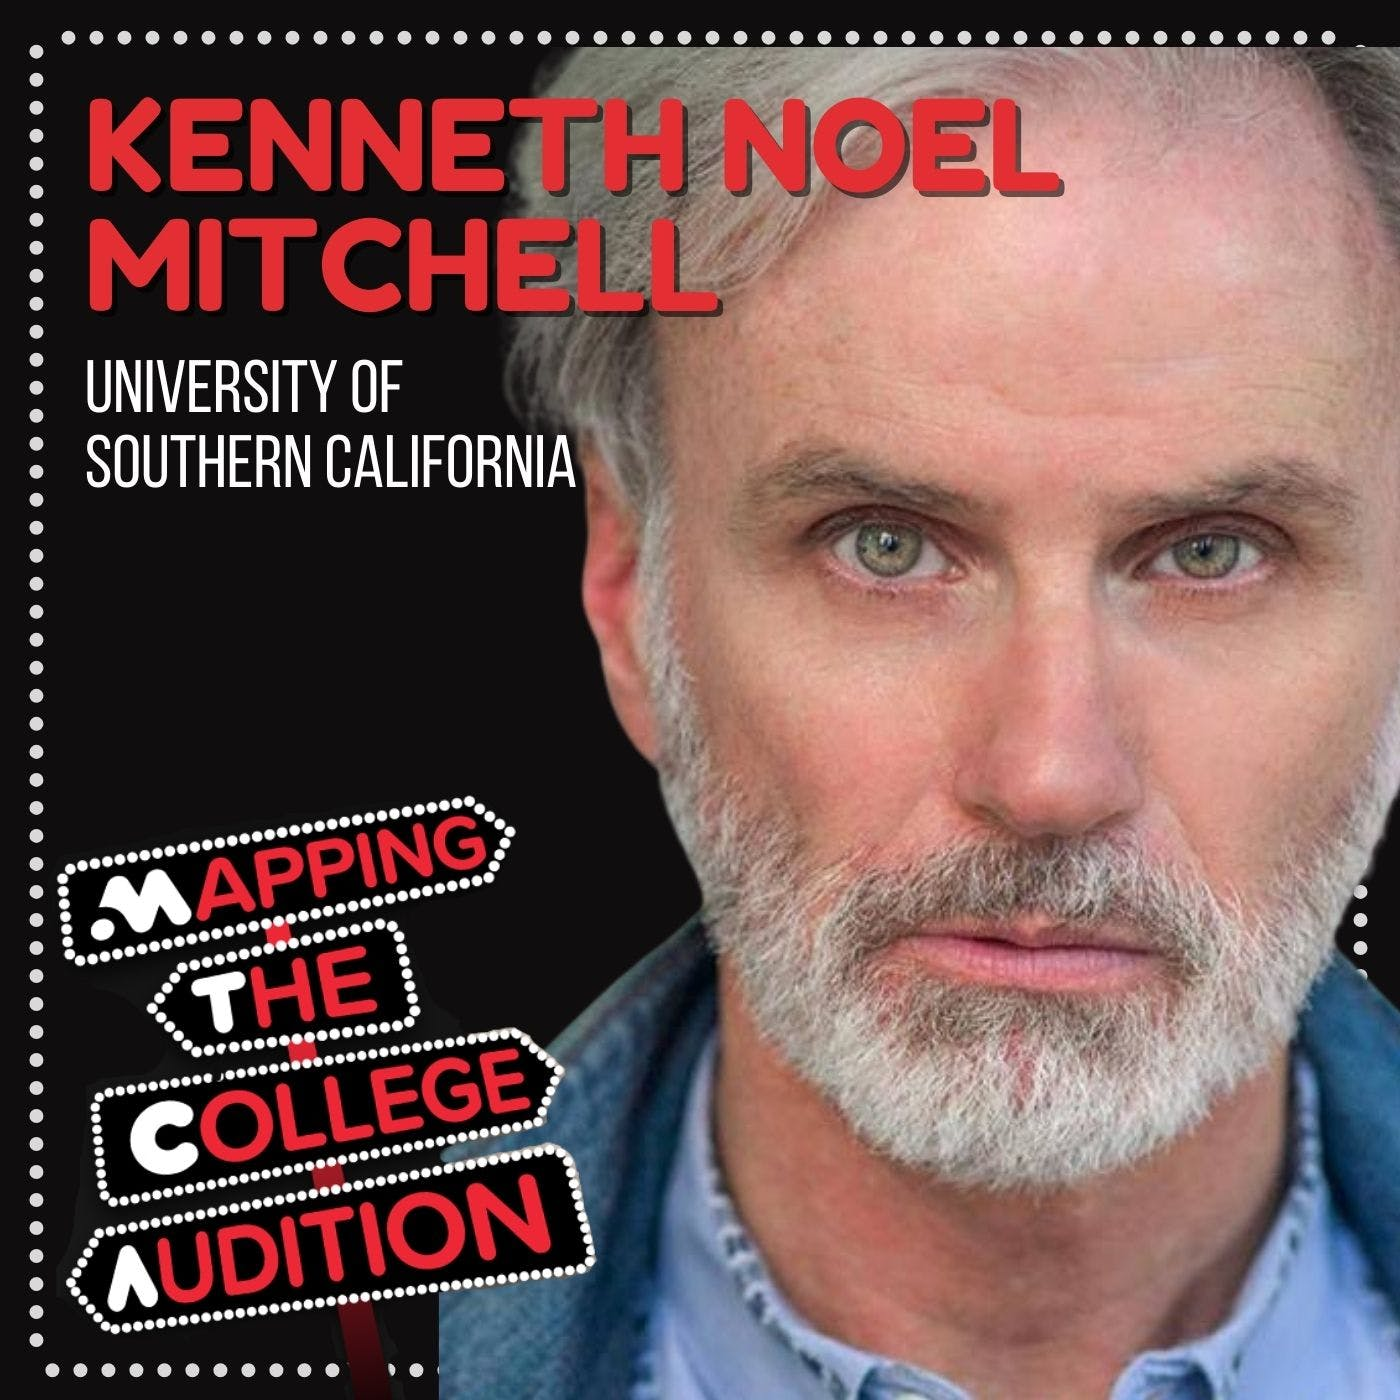 Ep. 14 (CDD): Kenneth Noel Mitchell from USC on Changing The Face of Musical Theater